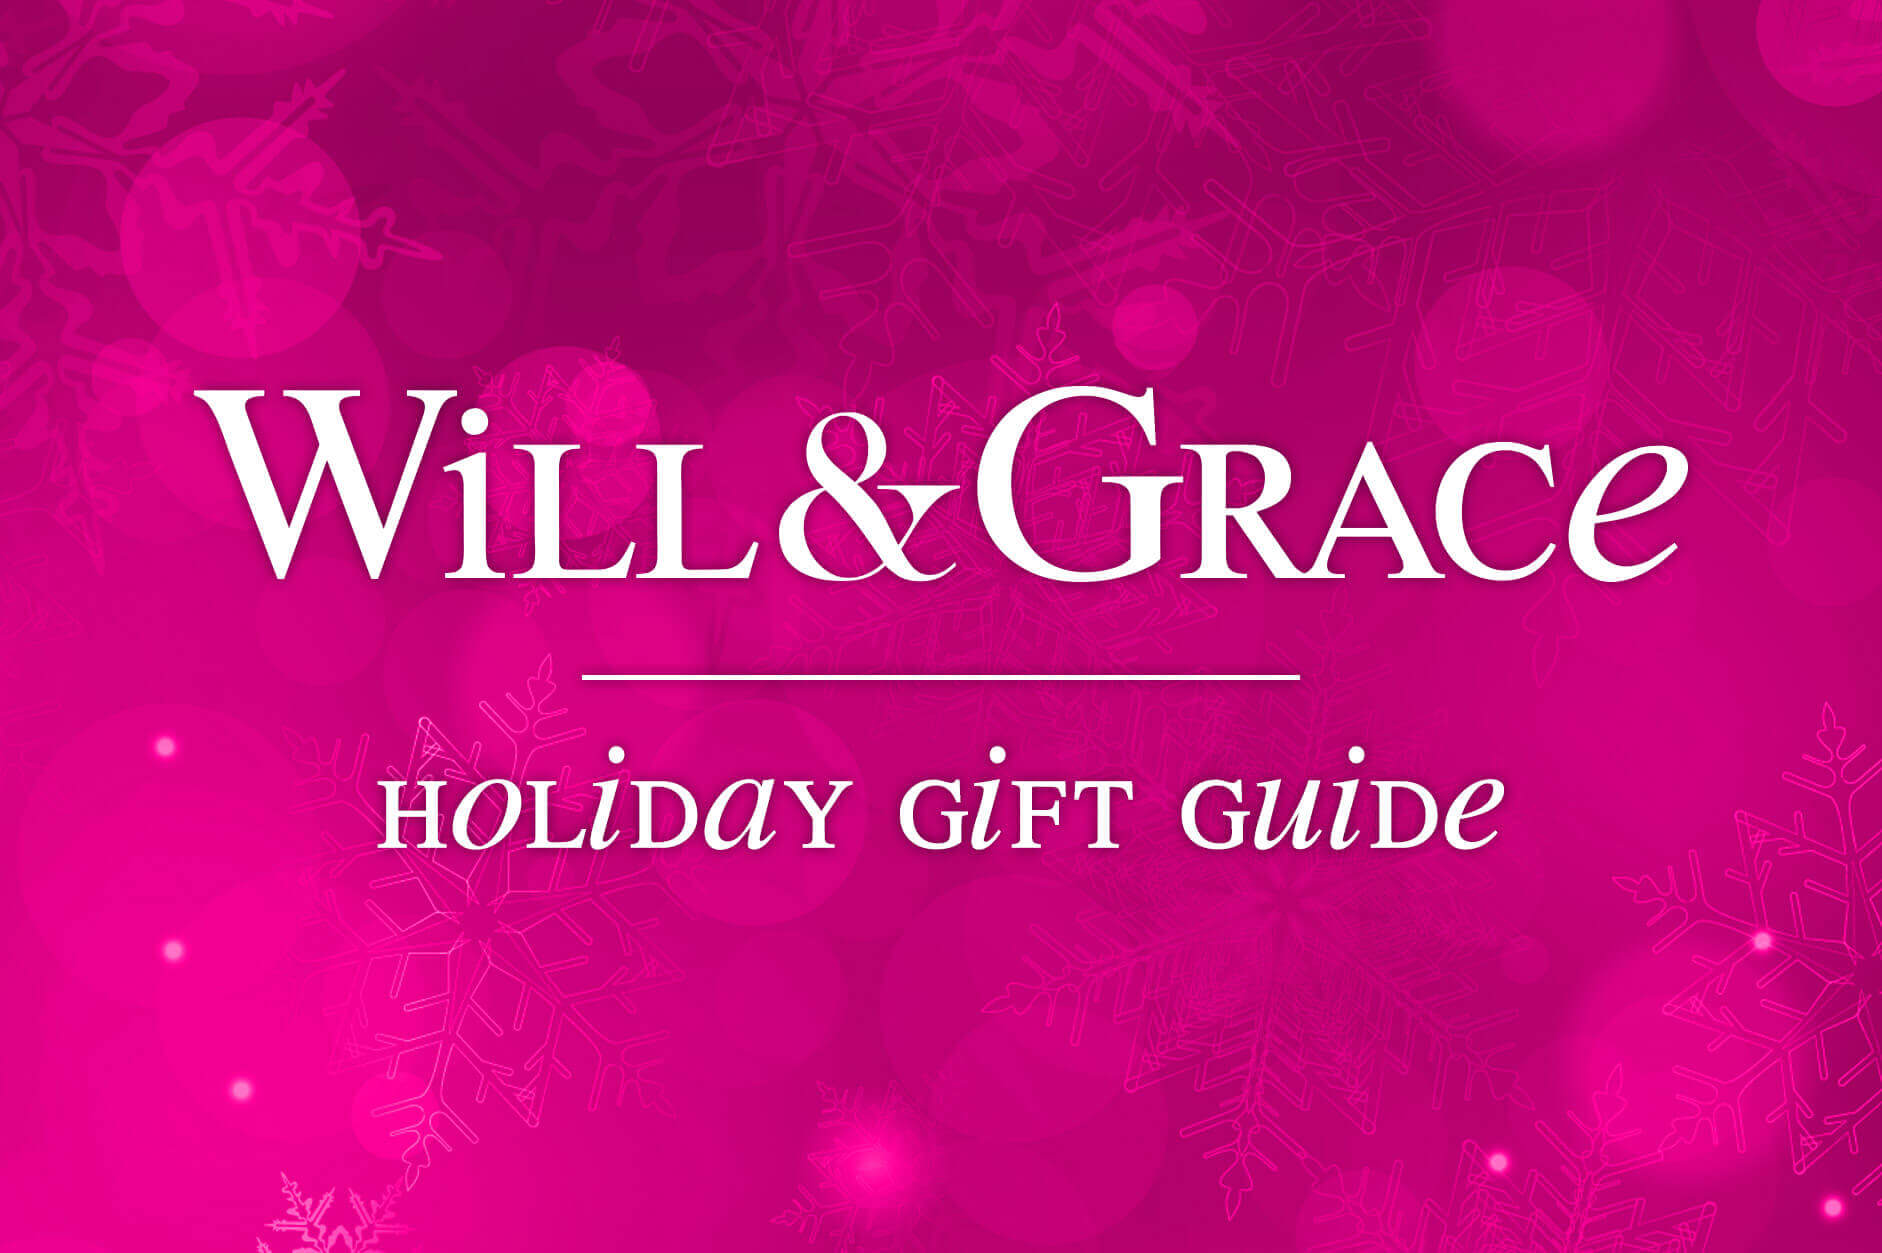 Will and Grace Holiday Gift Guide